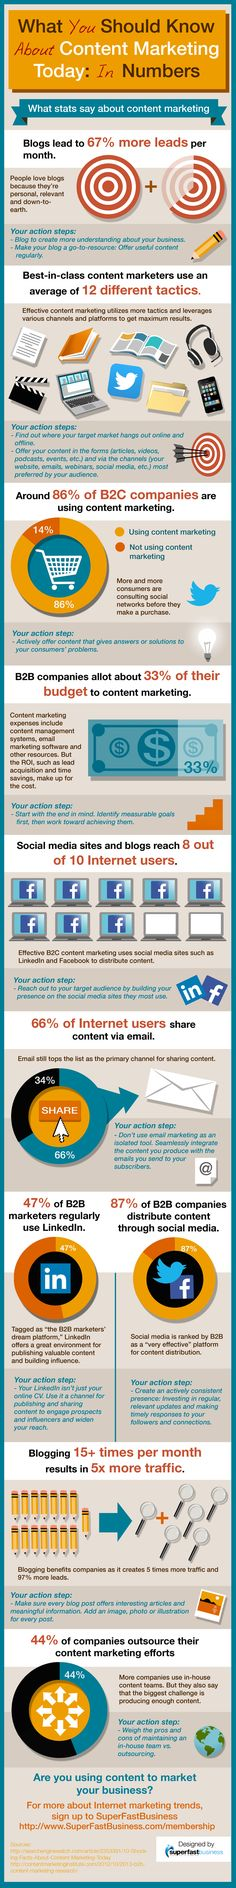 What You Should Know About Content Marketing Today: In Numbers #infographic #ContentMarketing #Marketing